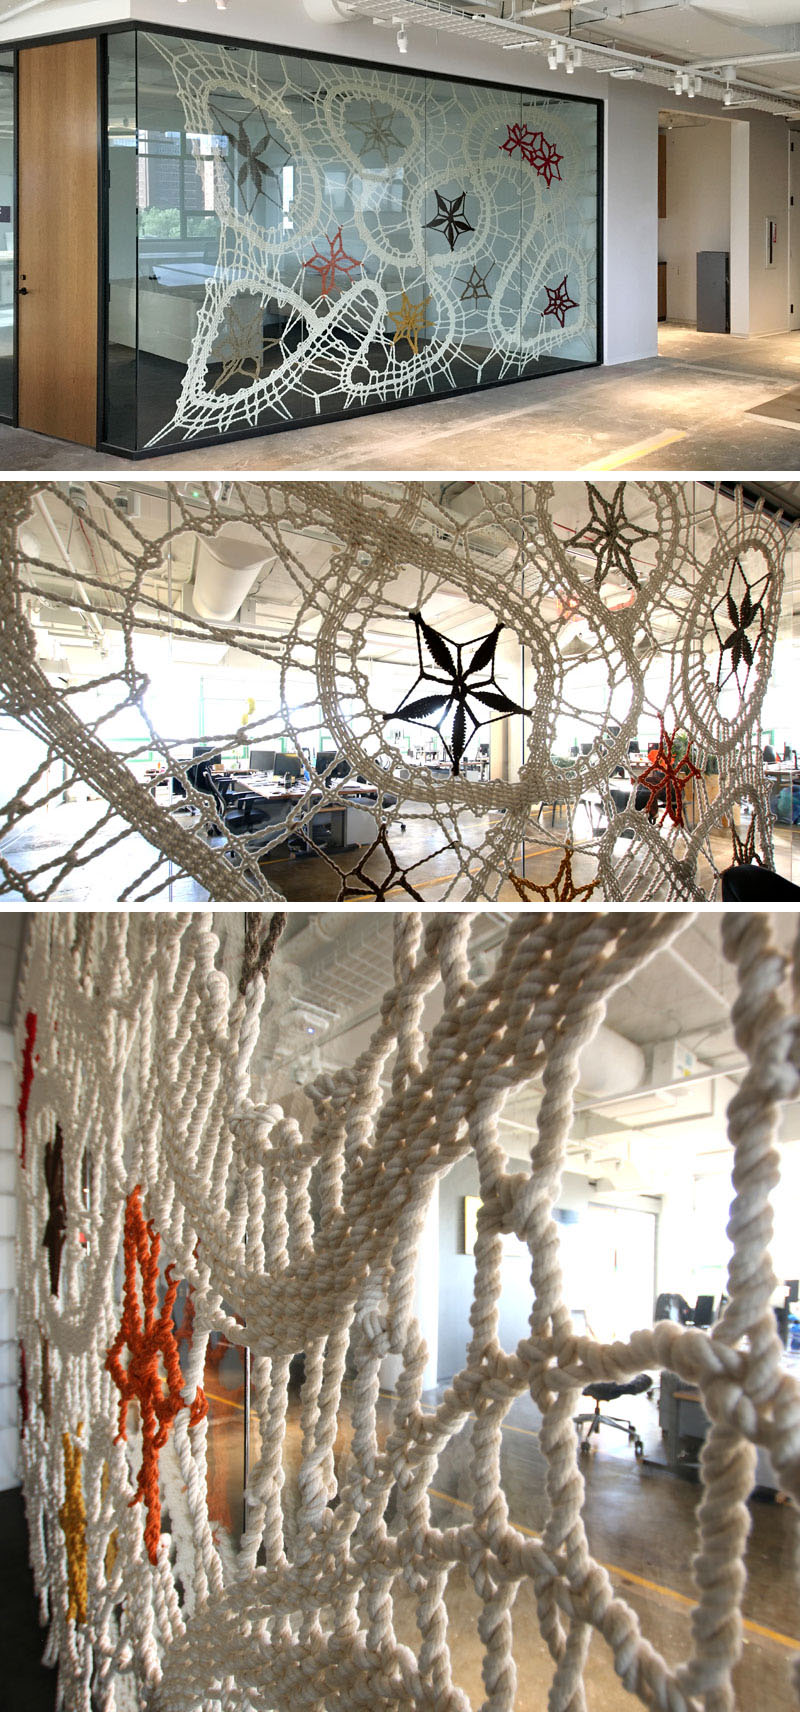 Rope lace artwork Etsy office-6